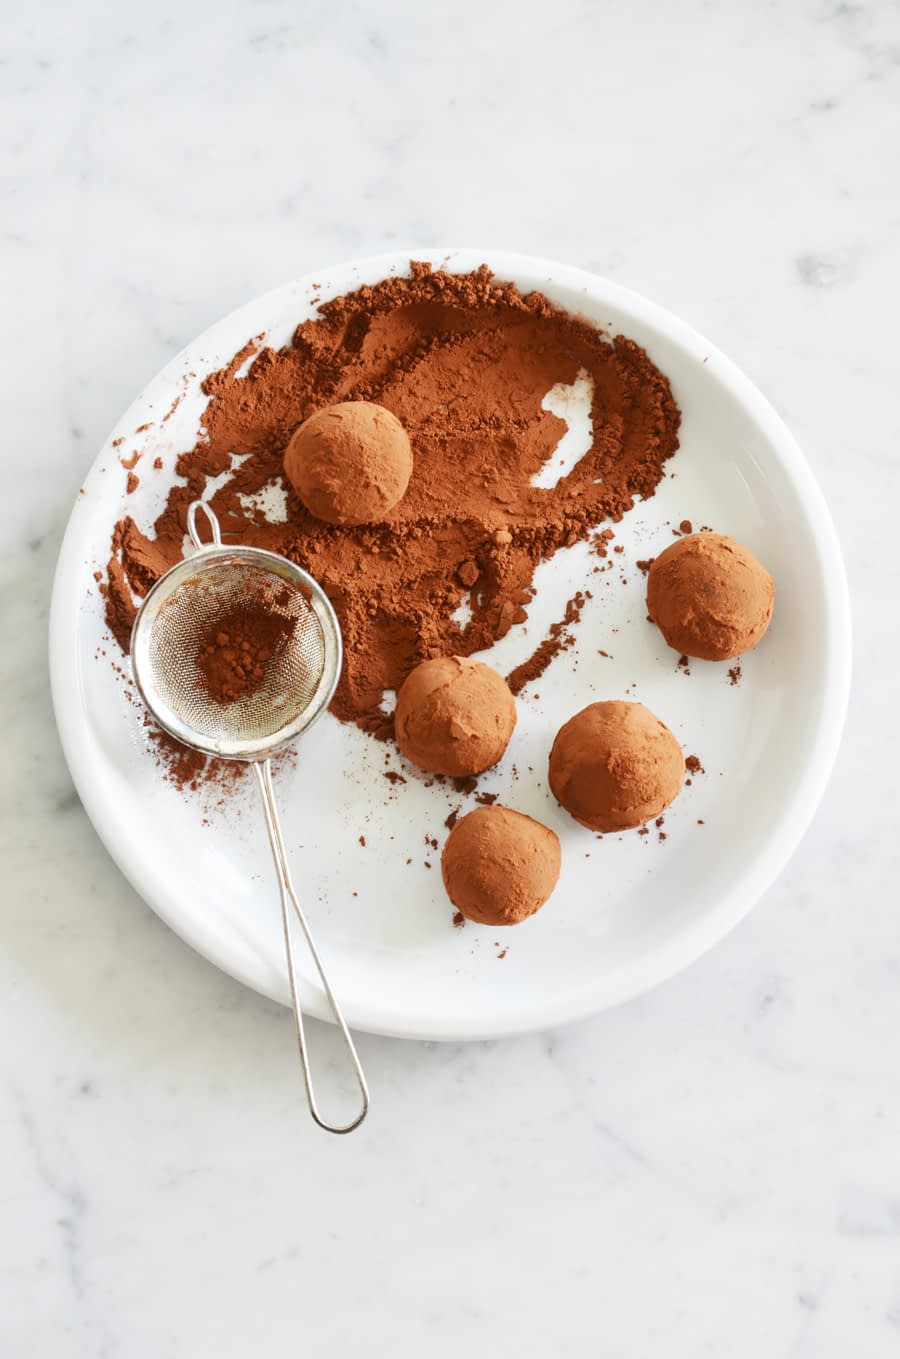 Three ingredient, whole food, healthier chocolate truffles by That Healthy Kitchen. Dairy free, gluten free and vegan too!